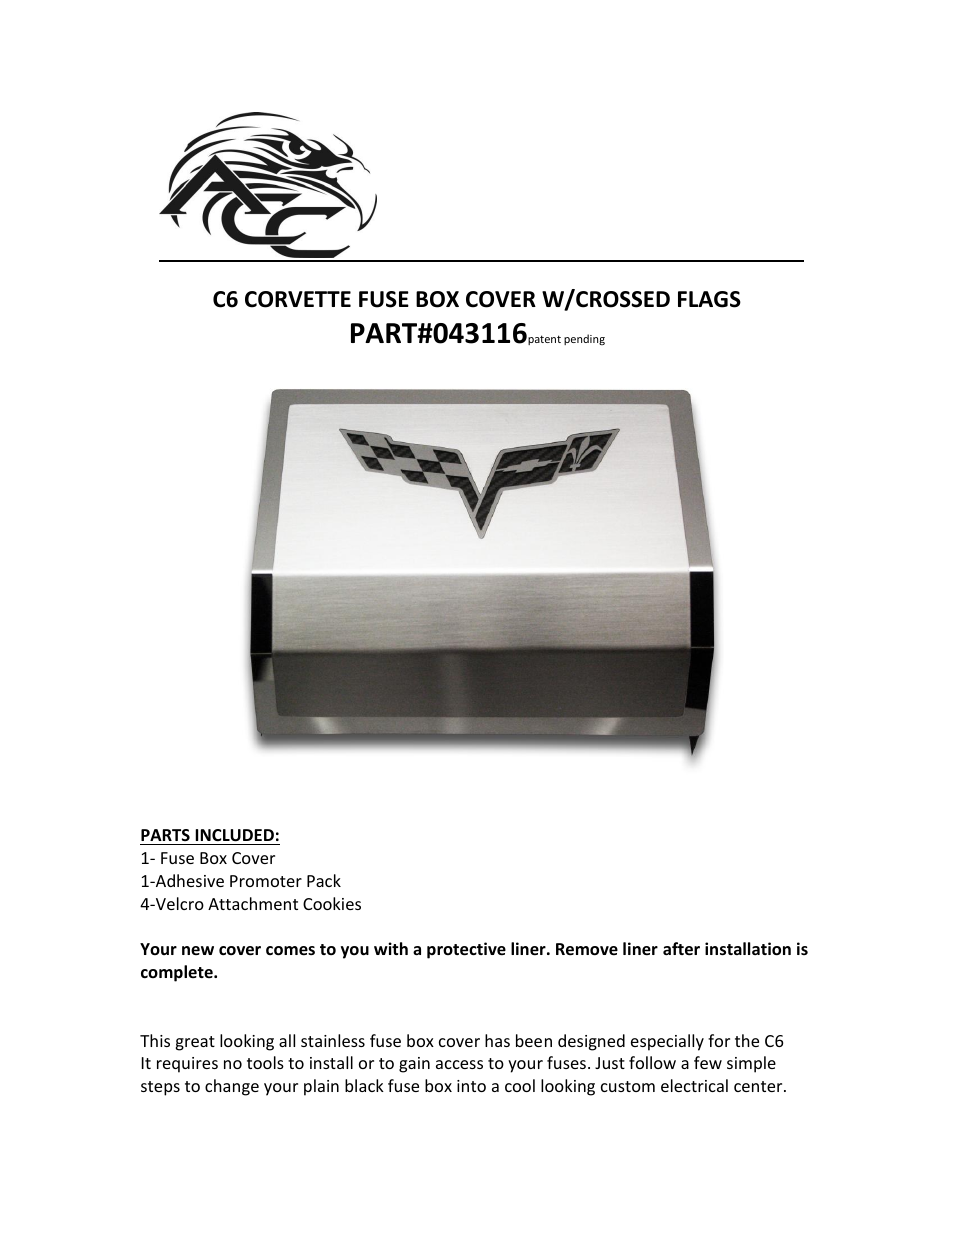 American Car Craft Corvette Fuse Box Cover Brushed_Polished with C6 Logo  Crossed Flags 2005-2013 C6 all User Manual | 2 pages